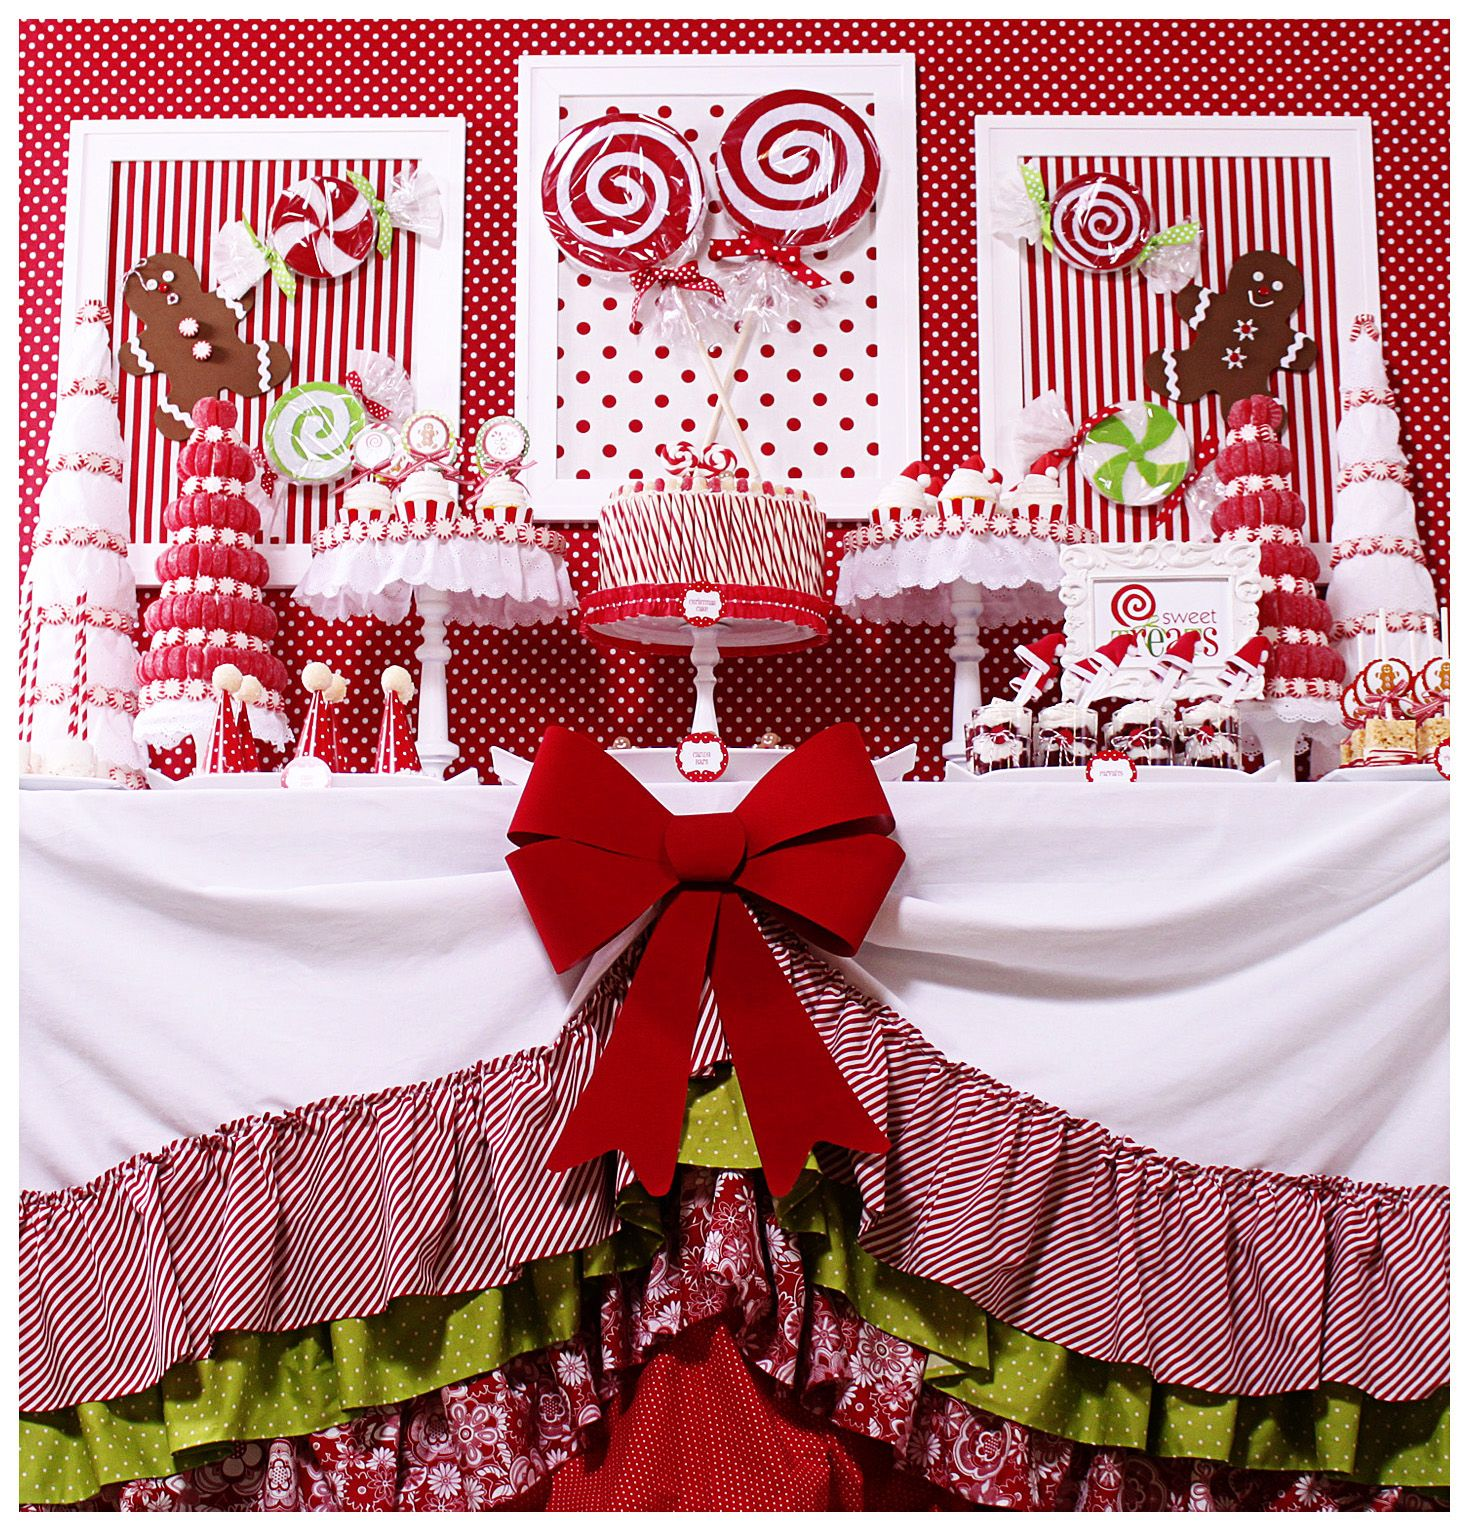 Candy Christmas Party {Christmas Party Theme} This Candy Christmas Party  Table Features Lots Of DIY Projects And Ideas Including Styrofoam  U201ccandies,u201d Santa ...